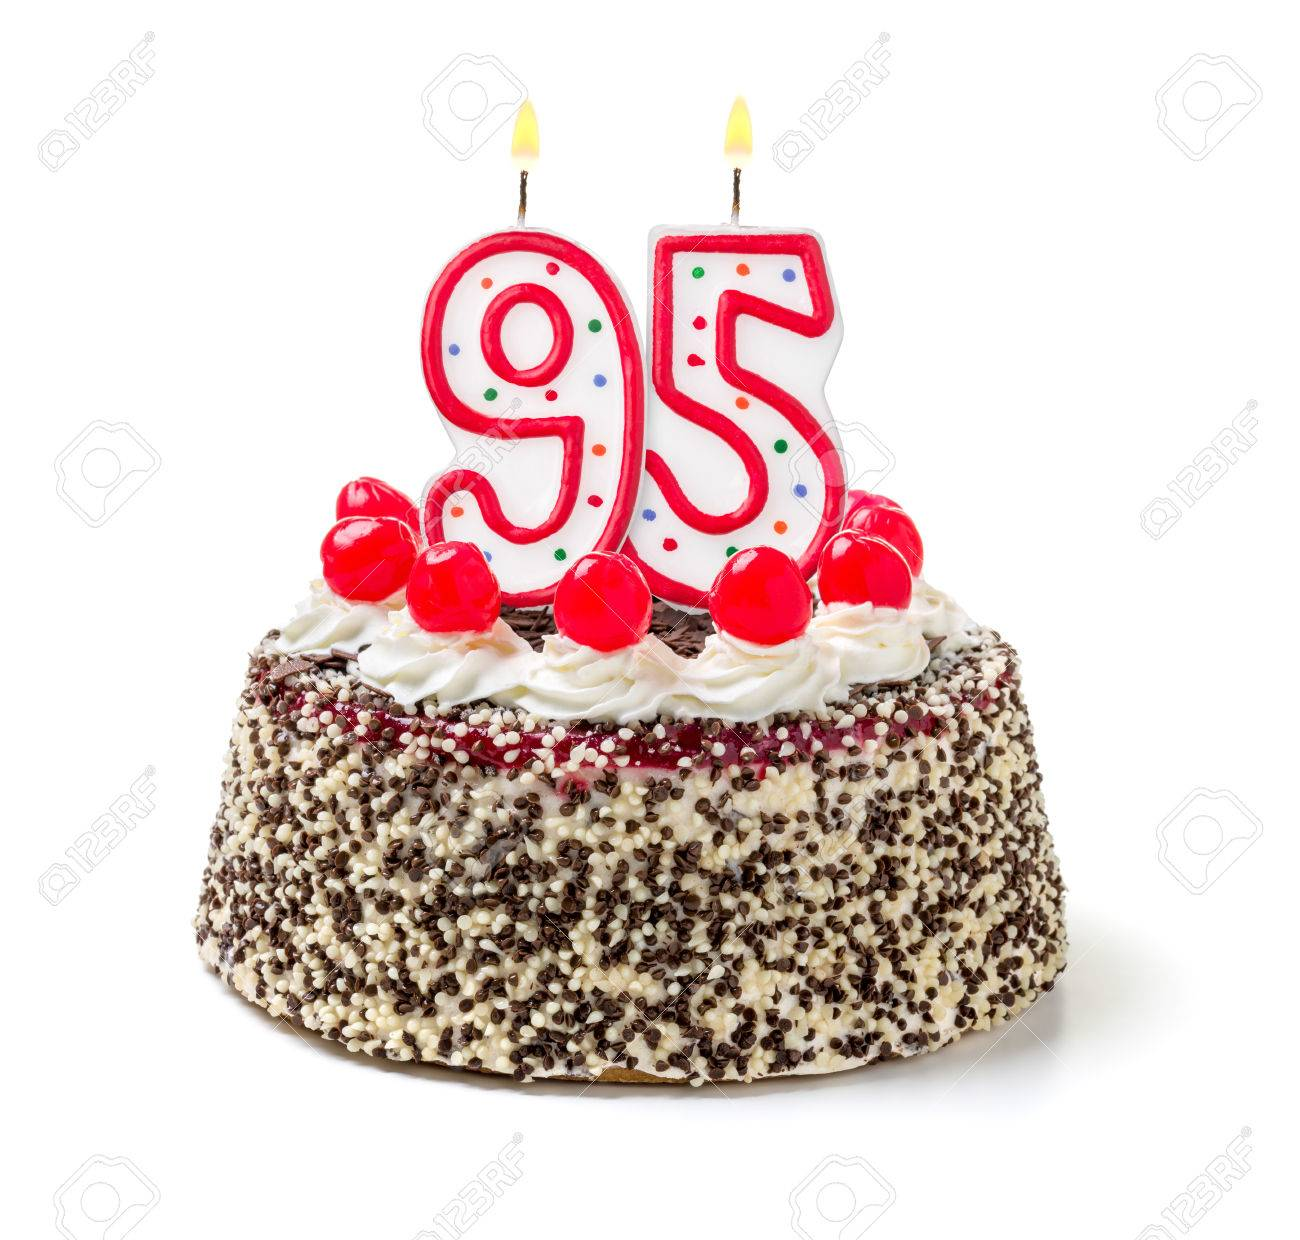 Birthday Cake With Burning Candle Number 95 Stock Photo